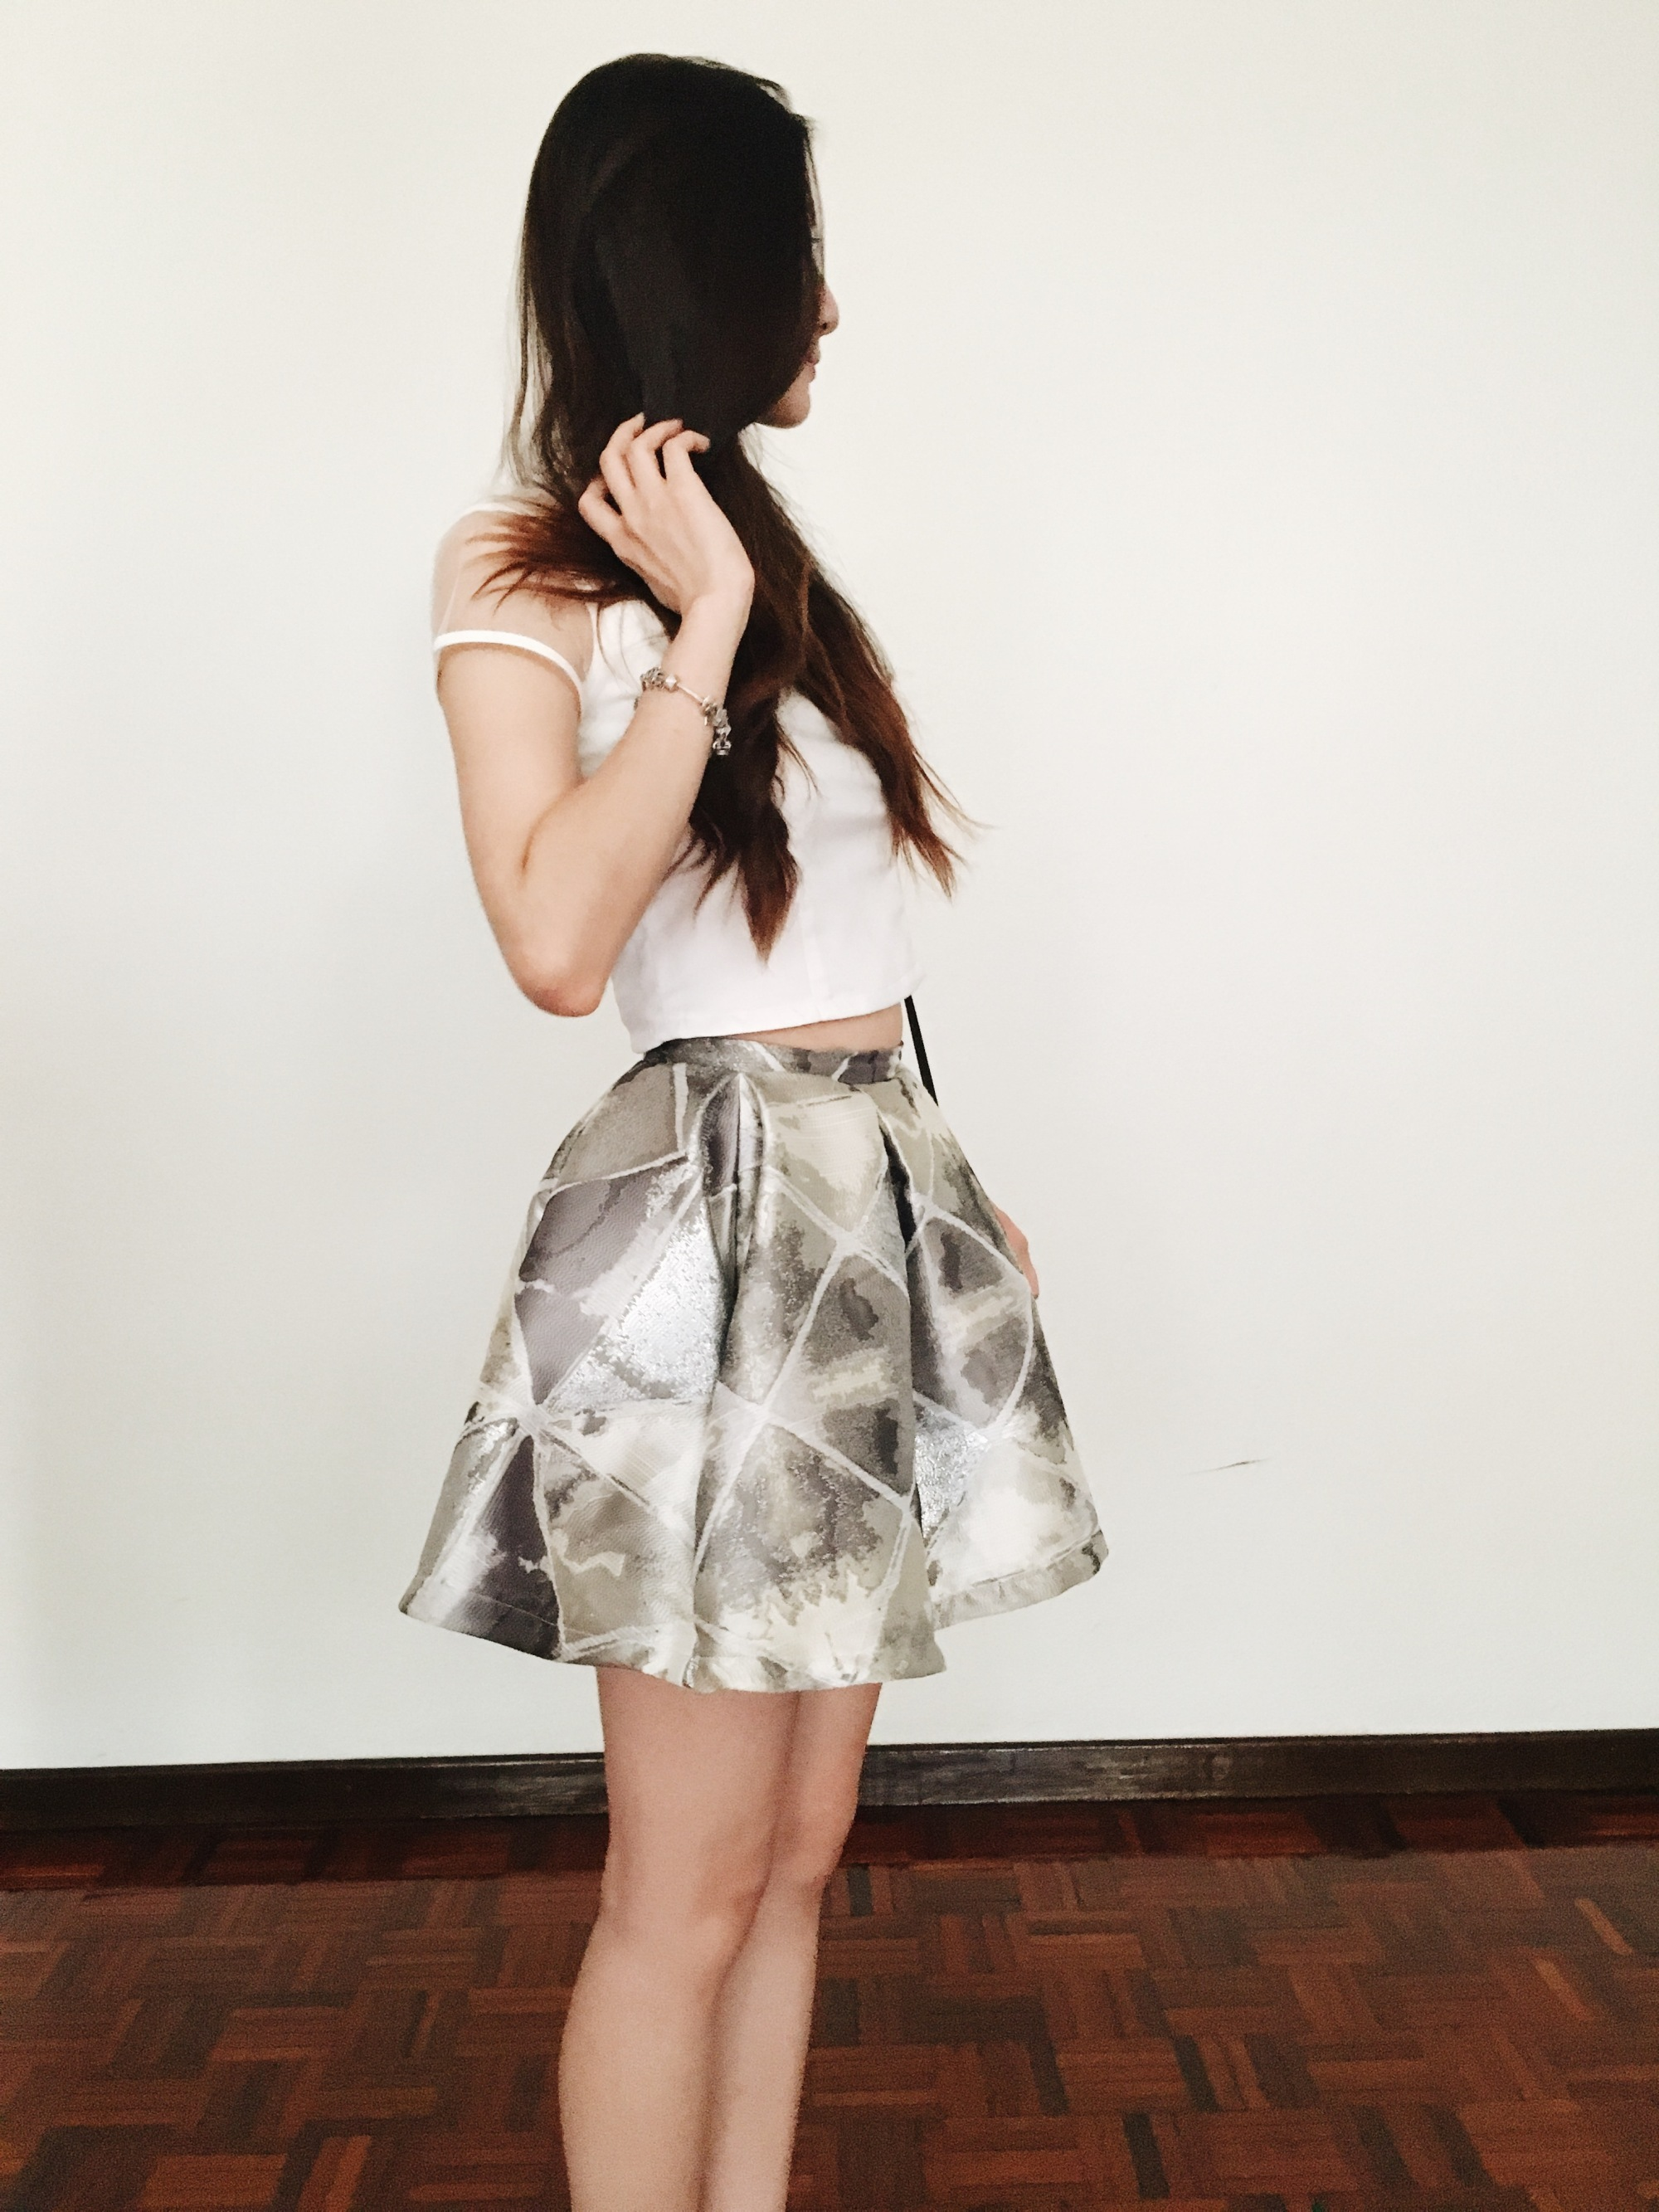 the-nat-channel-styled-by-n-silver-voluminous-skirt